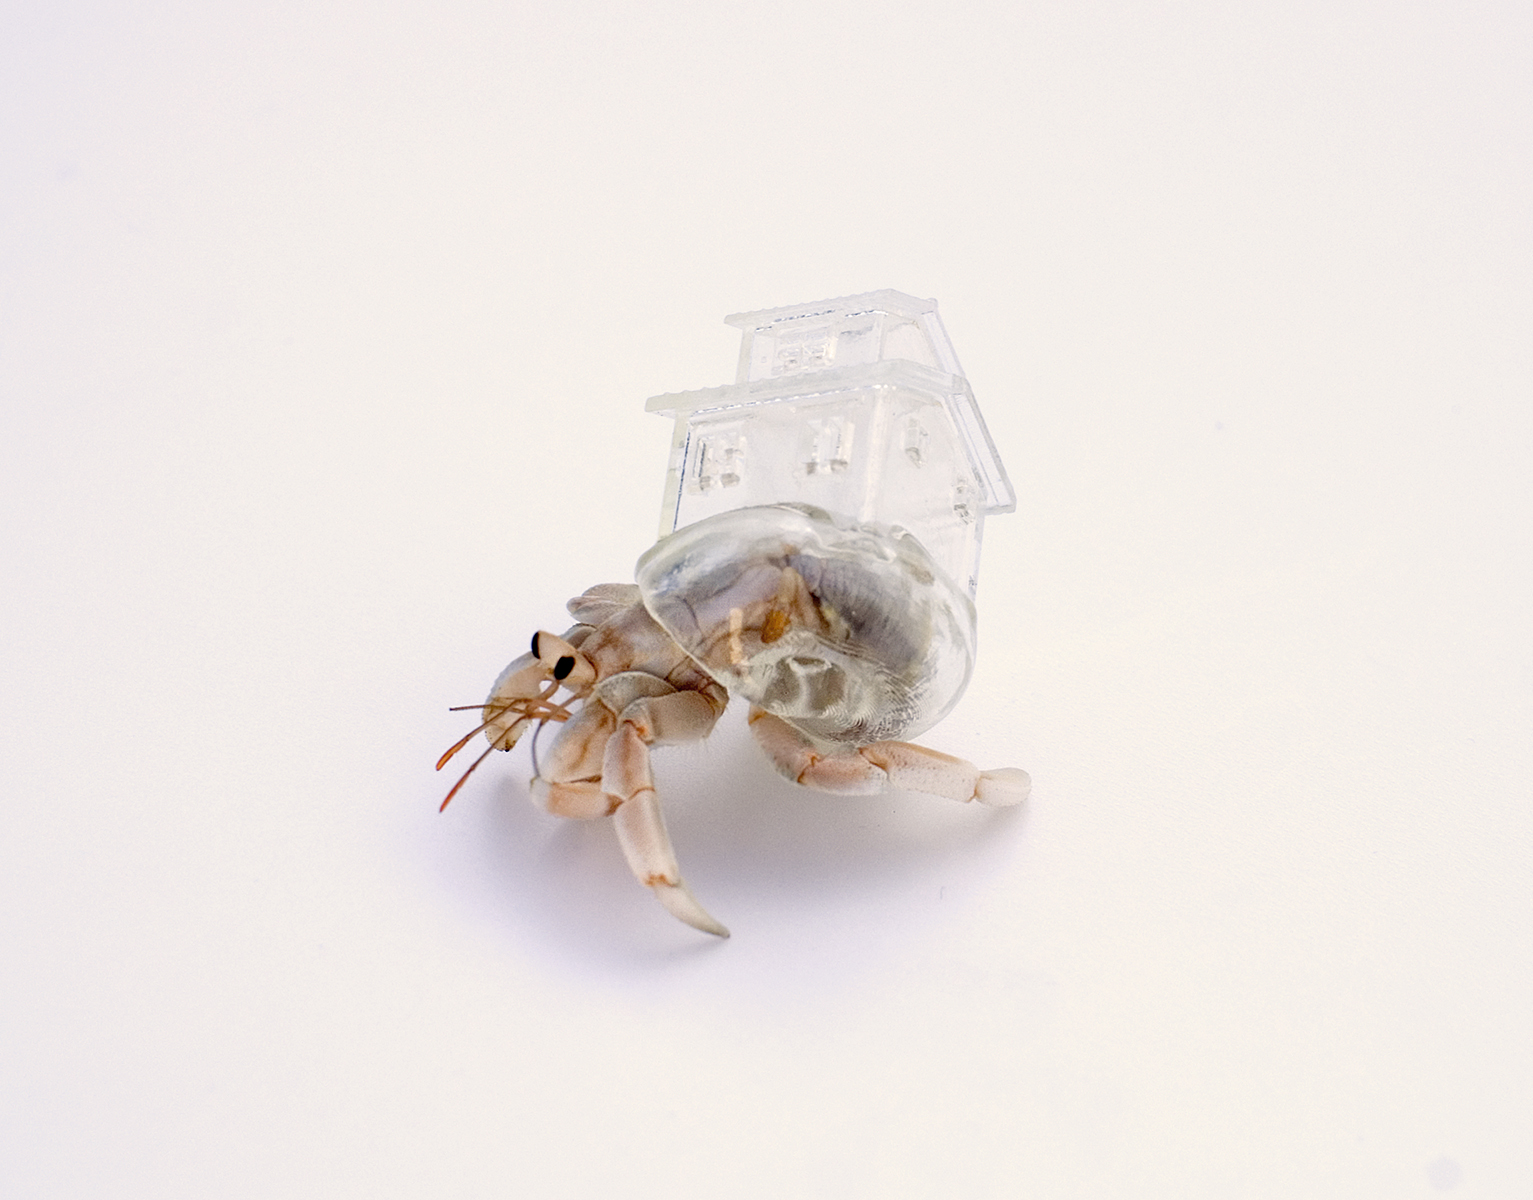 A Japanese artist has created stunning 3D-printed homes for hermit crabs based on architecture from around the world - Lonely Planet Travel News. Article by James Gabriel Martin. Photographs by Aki Inomata